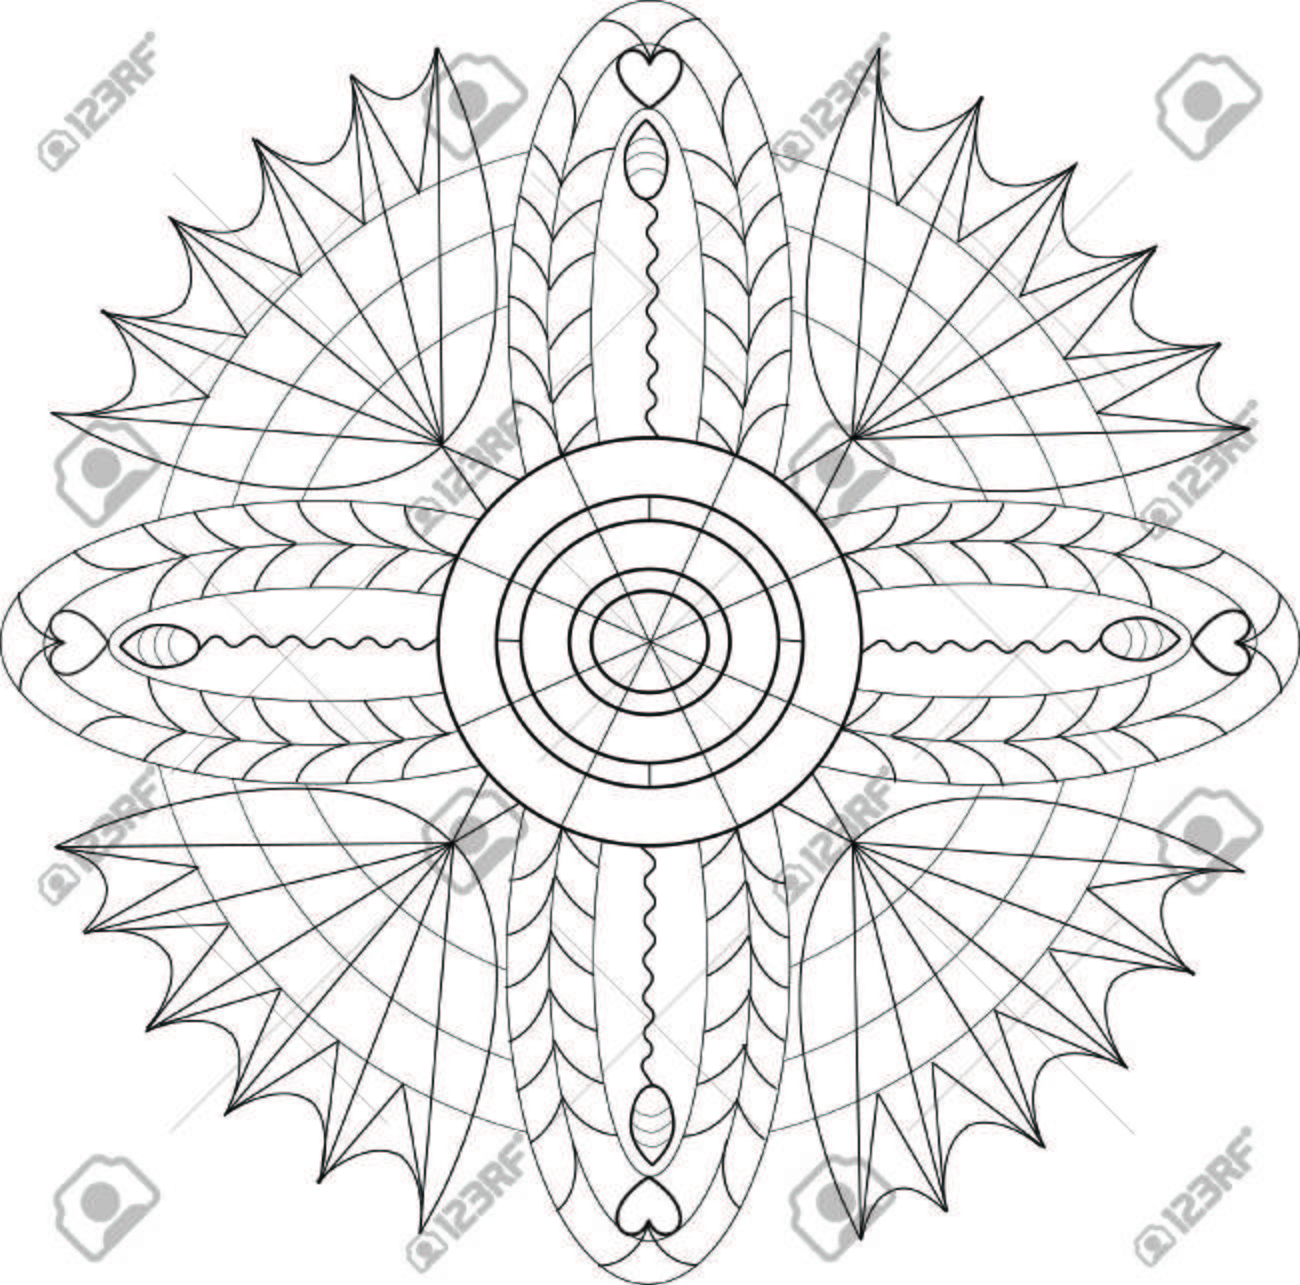 Illustration Mandala For Coloring Books With Patterns, Hearts ...